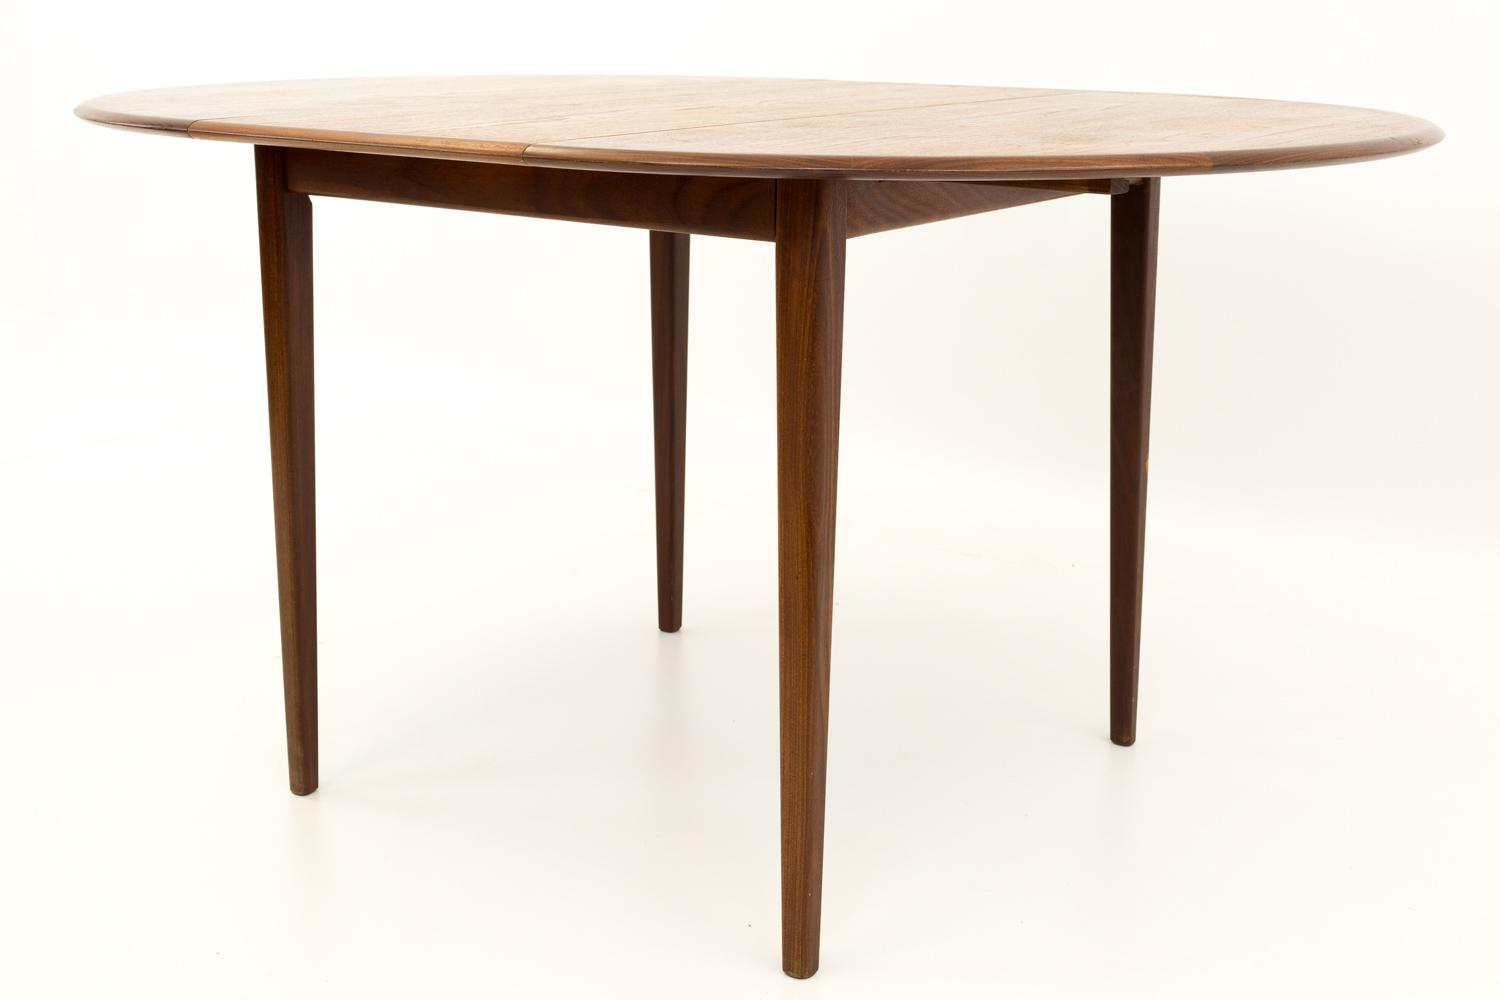 Mid Century Modern Mid Century Modern Round Oval Teak Dining Table For Sale    Image